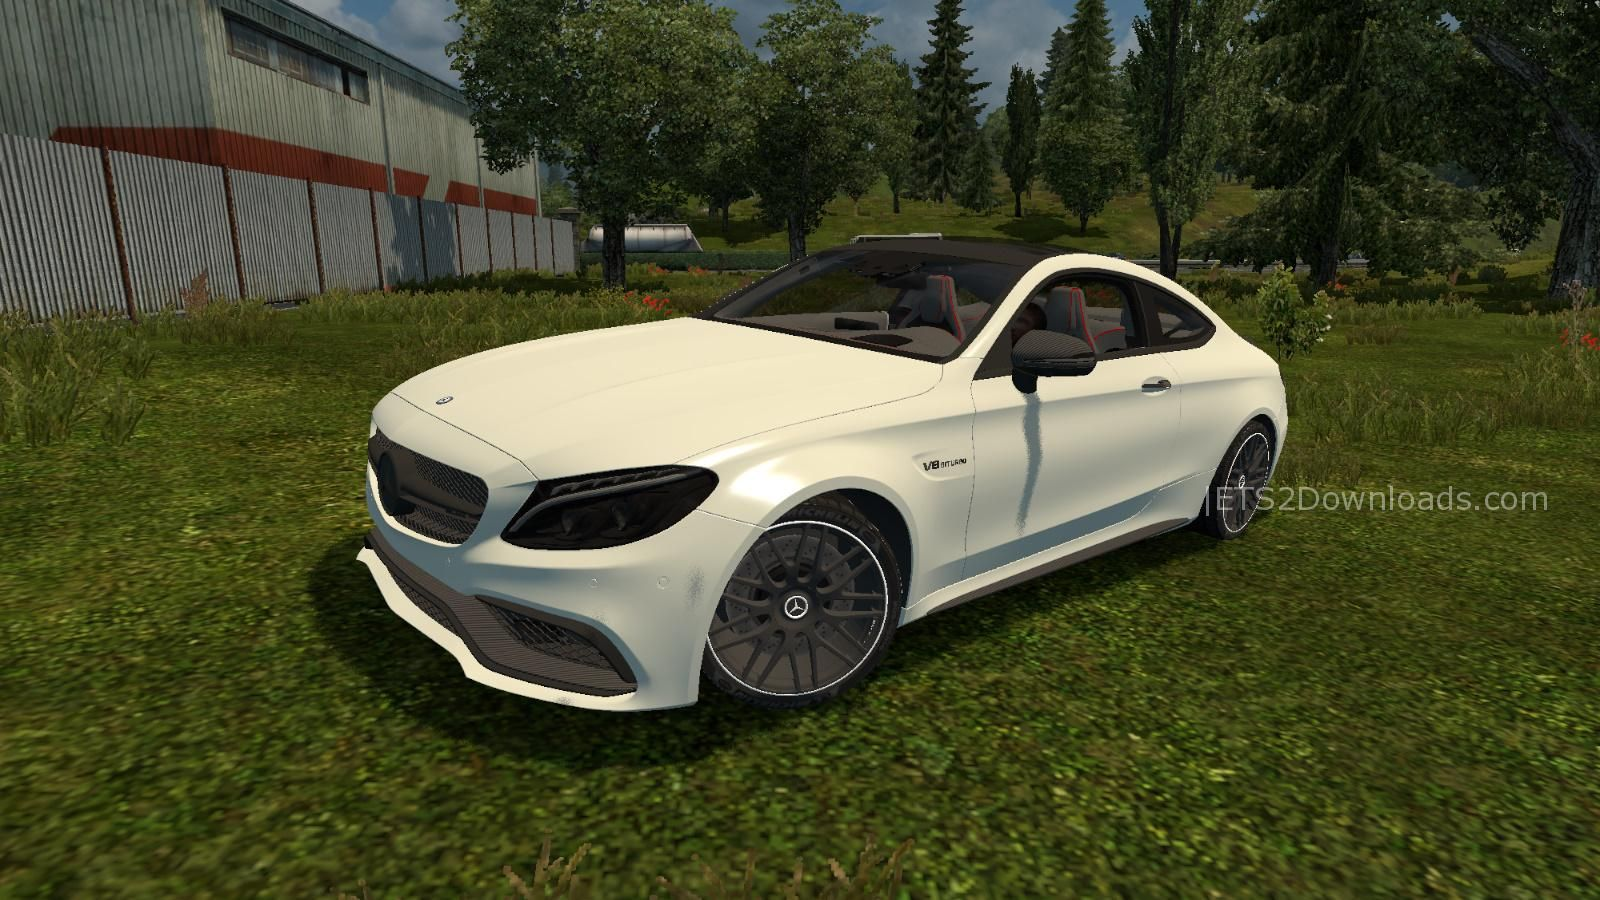 Mercedes benz c63s amg v1 0 ets 2 mods ets2downloads for Mercedes benz cars pictures